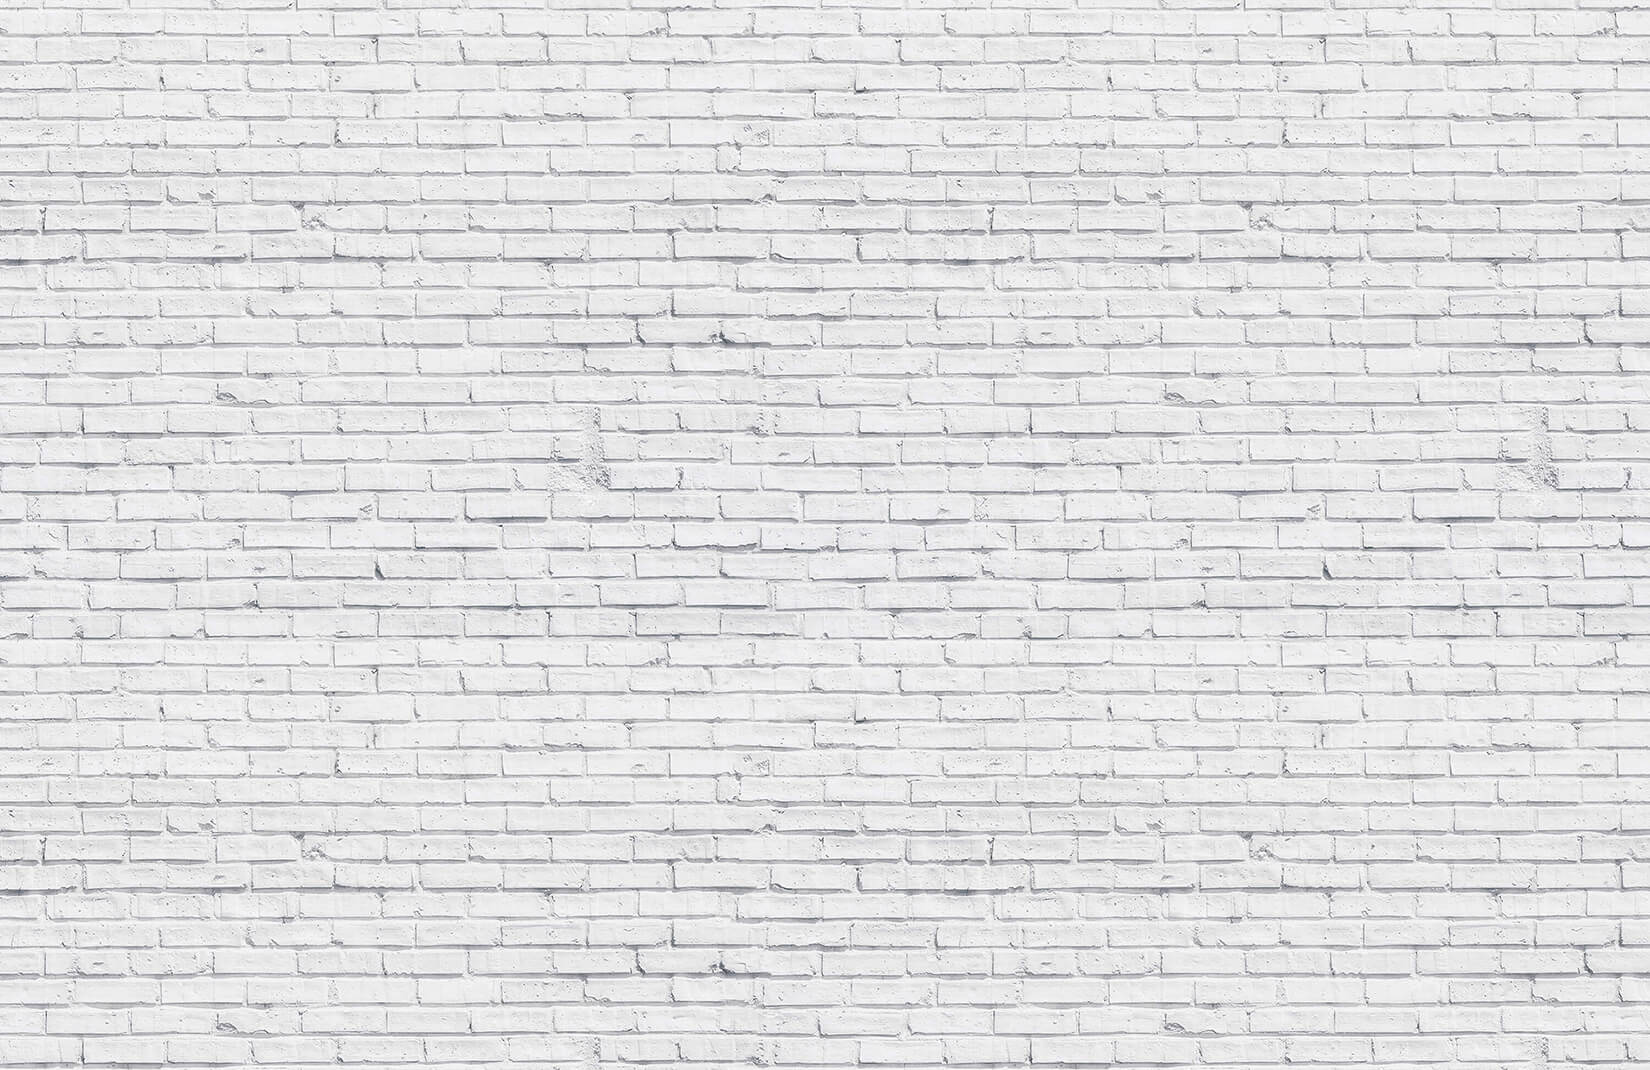 Astounding Clean Brick Wall Textures Plain Brick Wall Decor Brick Wall Living Room houzz 01 White Brick Wall